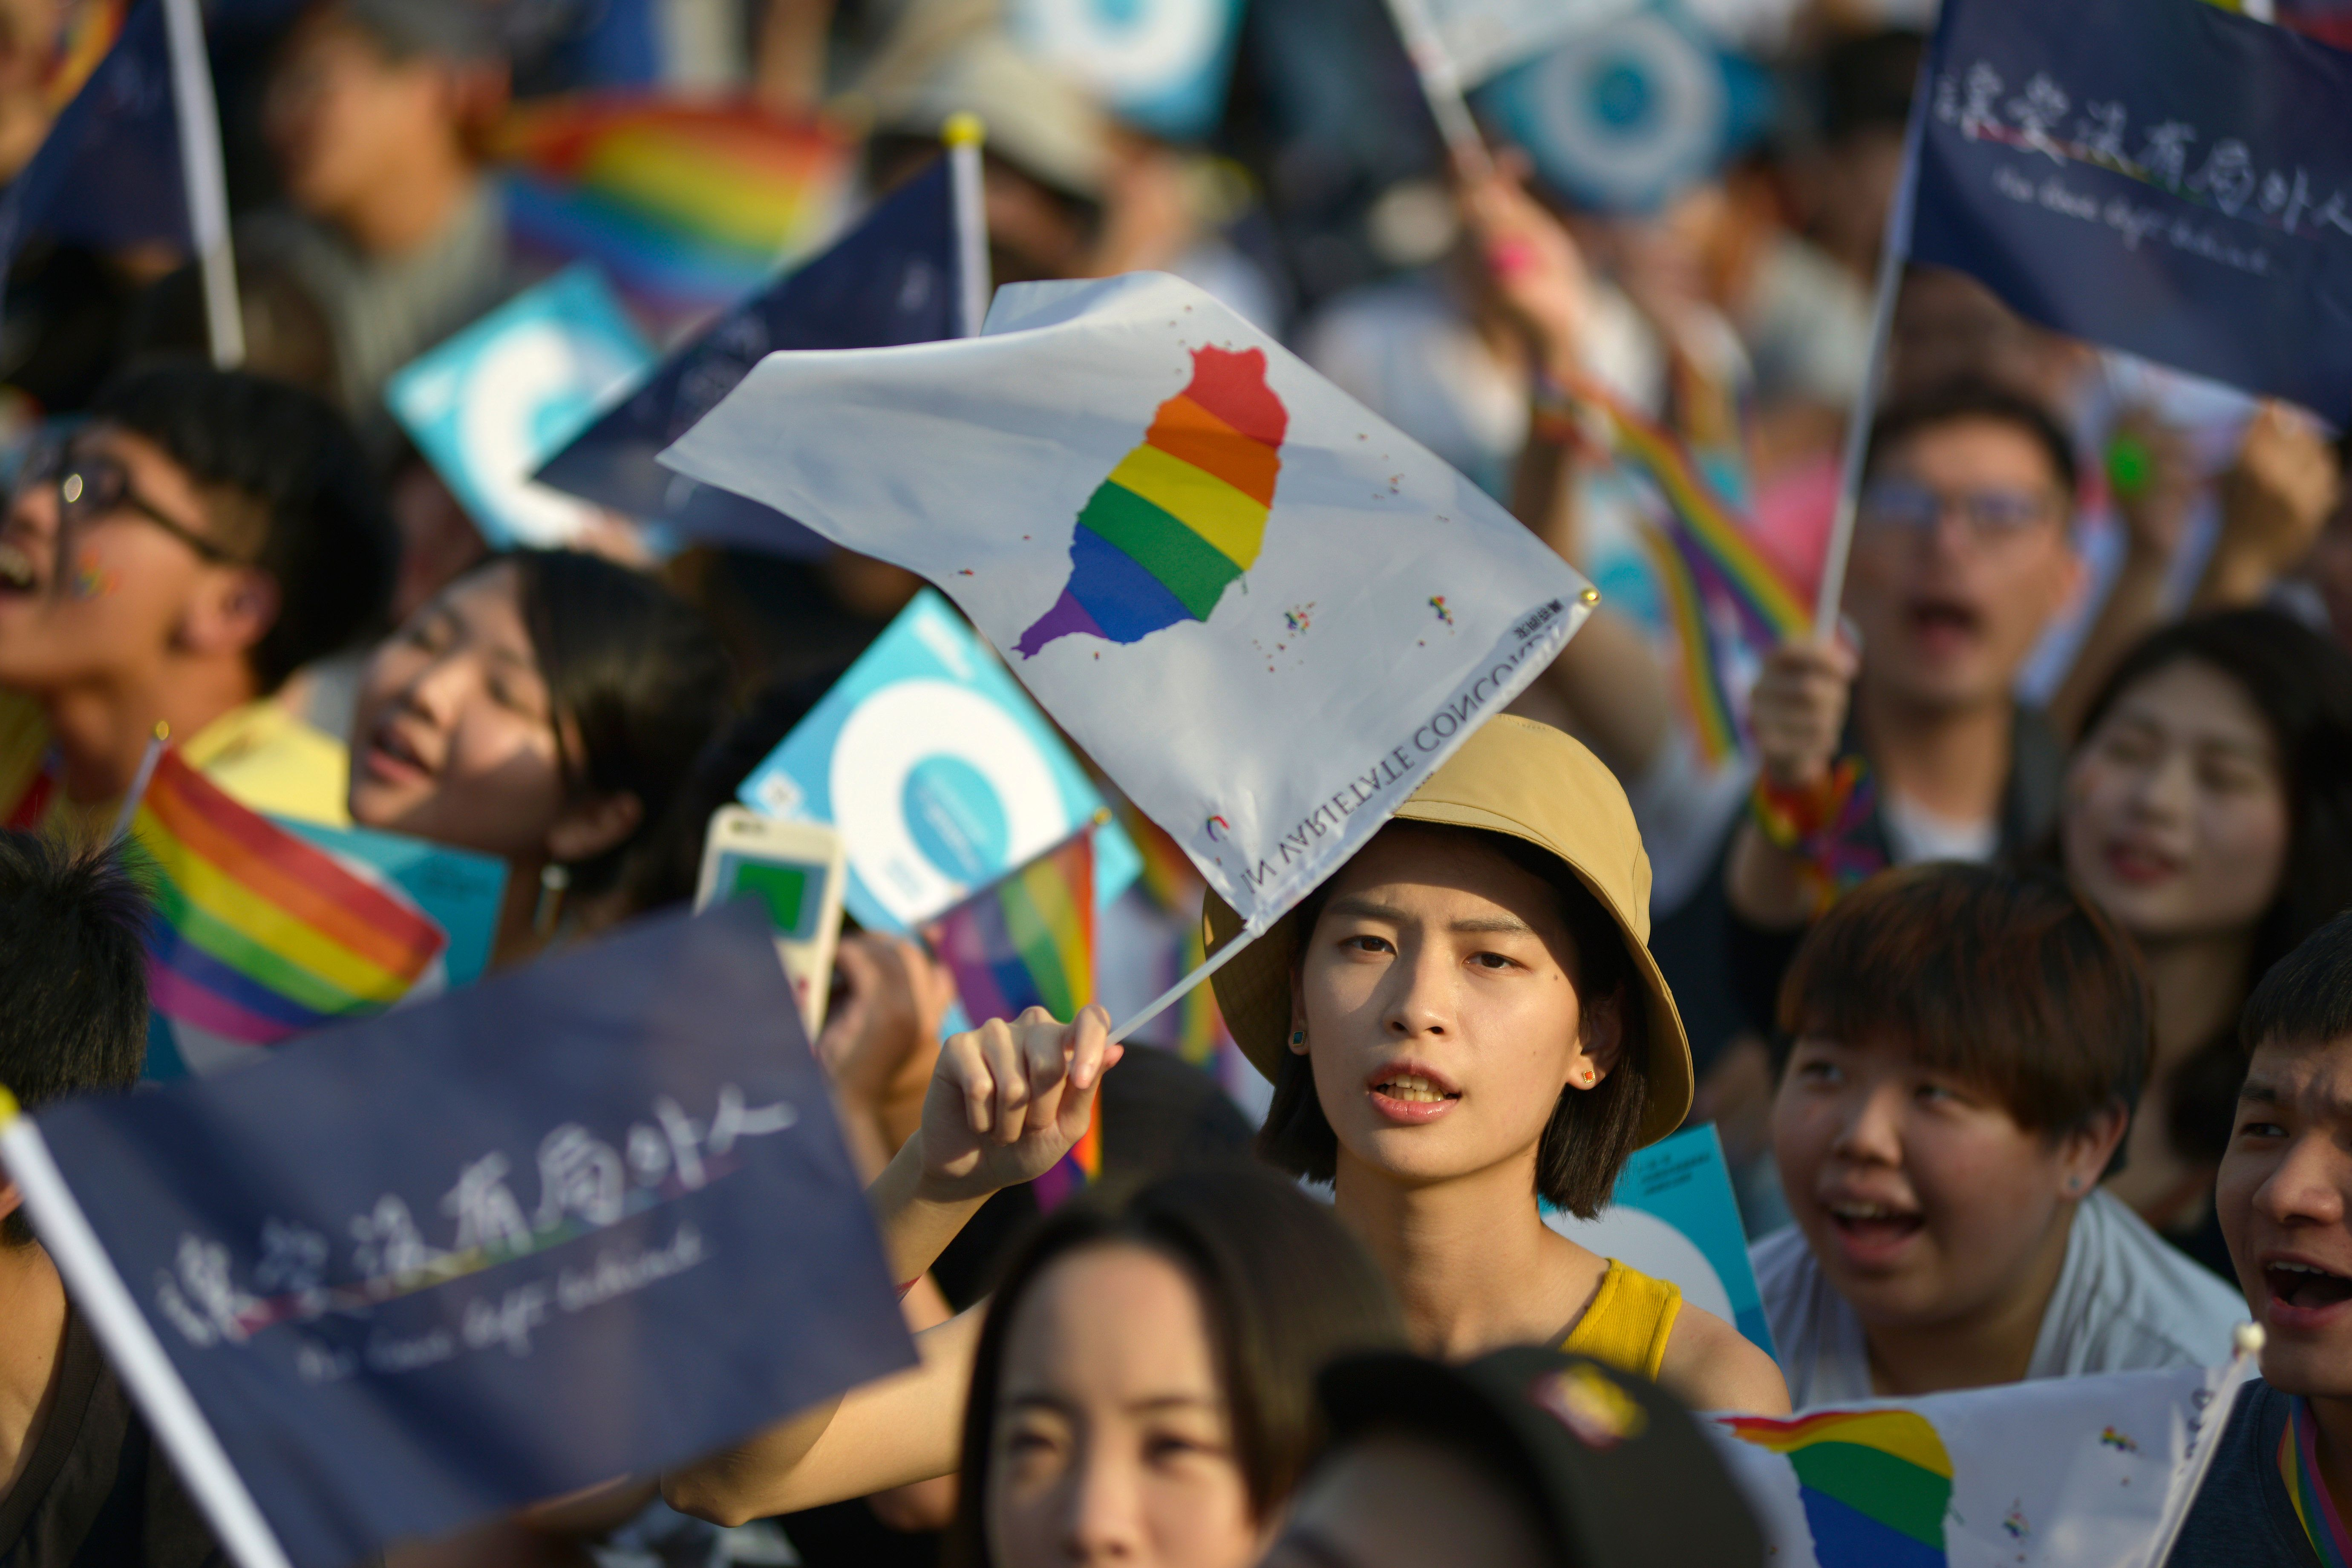 People take part in a rally in support of same-sex marriage near the Presidential Office in Taipei on November 18, 2018, ahead of a landmark vote on LGBT rights on November 24. - Taiwan's top court in May 2017 legalised gay marriage, the first place in Asia to do so, and ruled its decision must be implemented within two years. (Photo by Chris STOWERS / AFP)        (Photo credit should read CHRIS STOWERS/AFP/Getty Images)